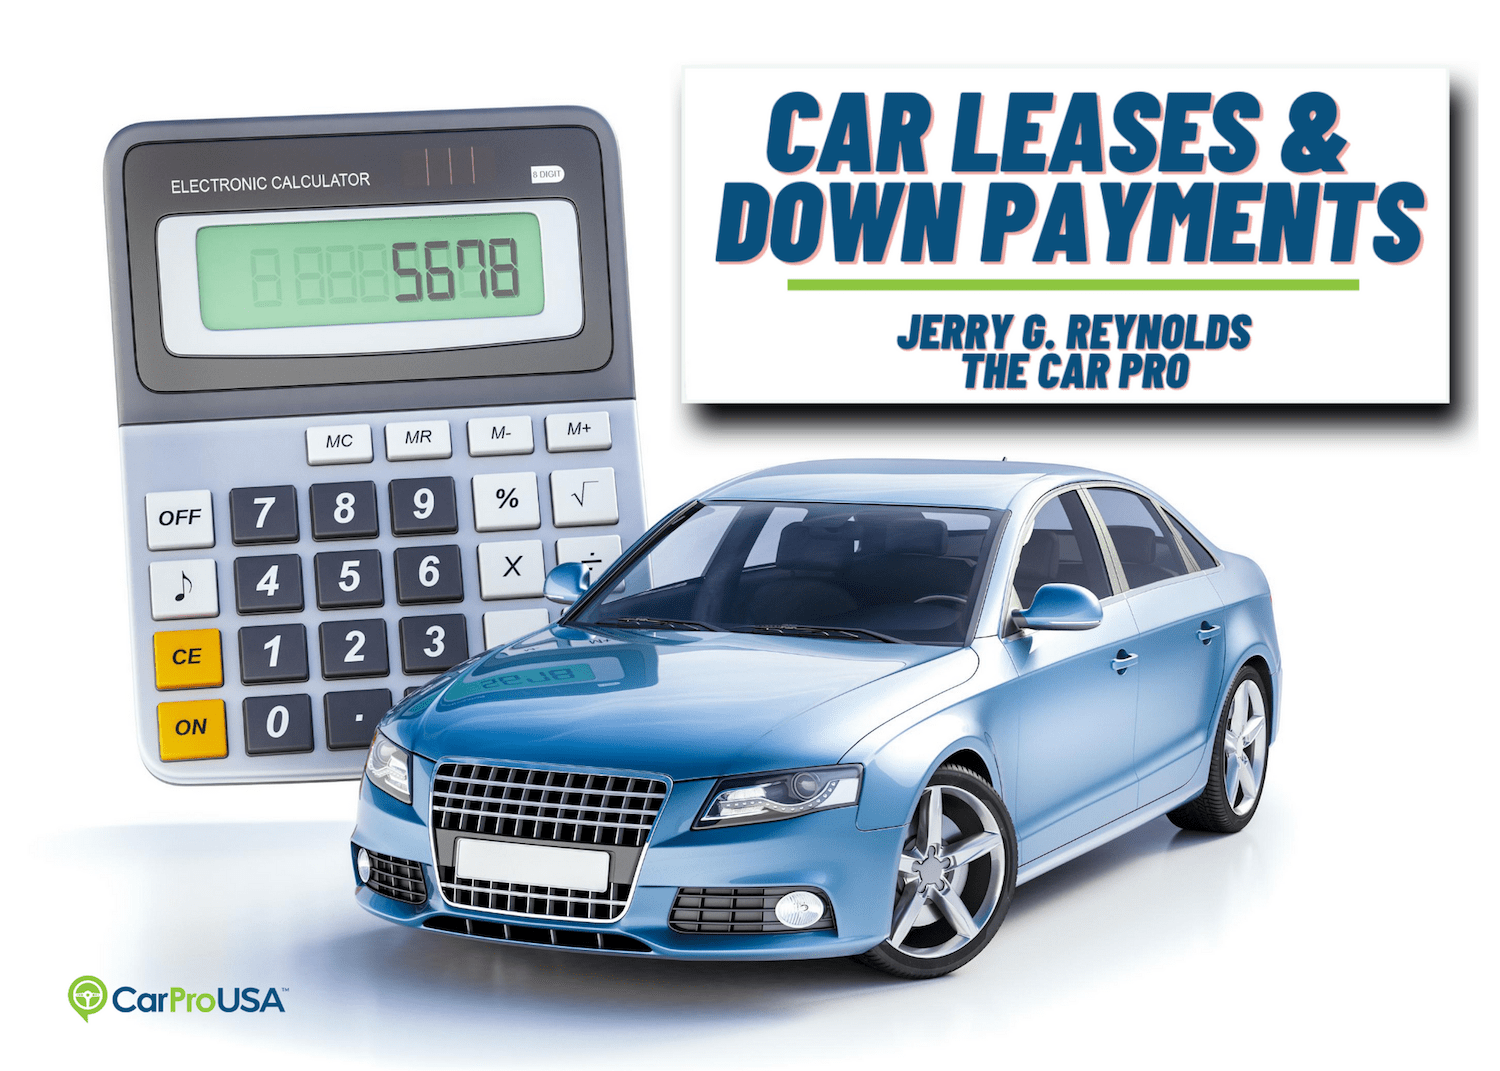 Car leases & down payments